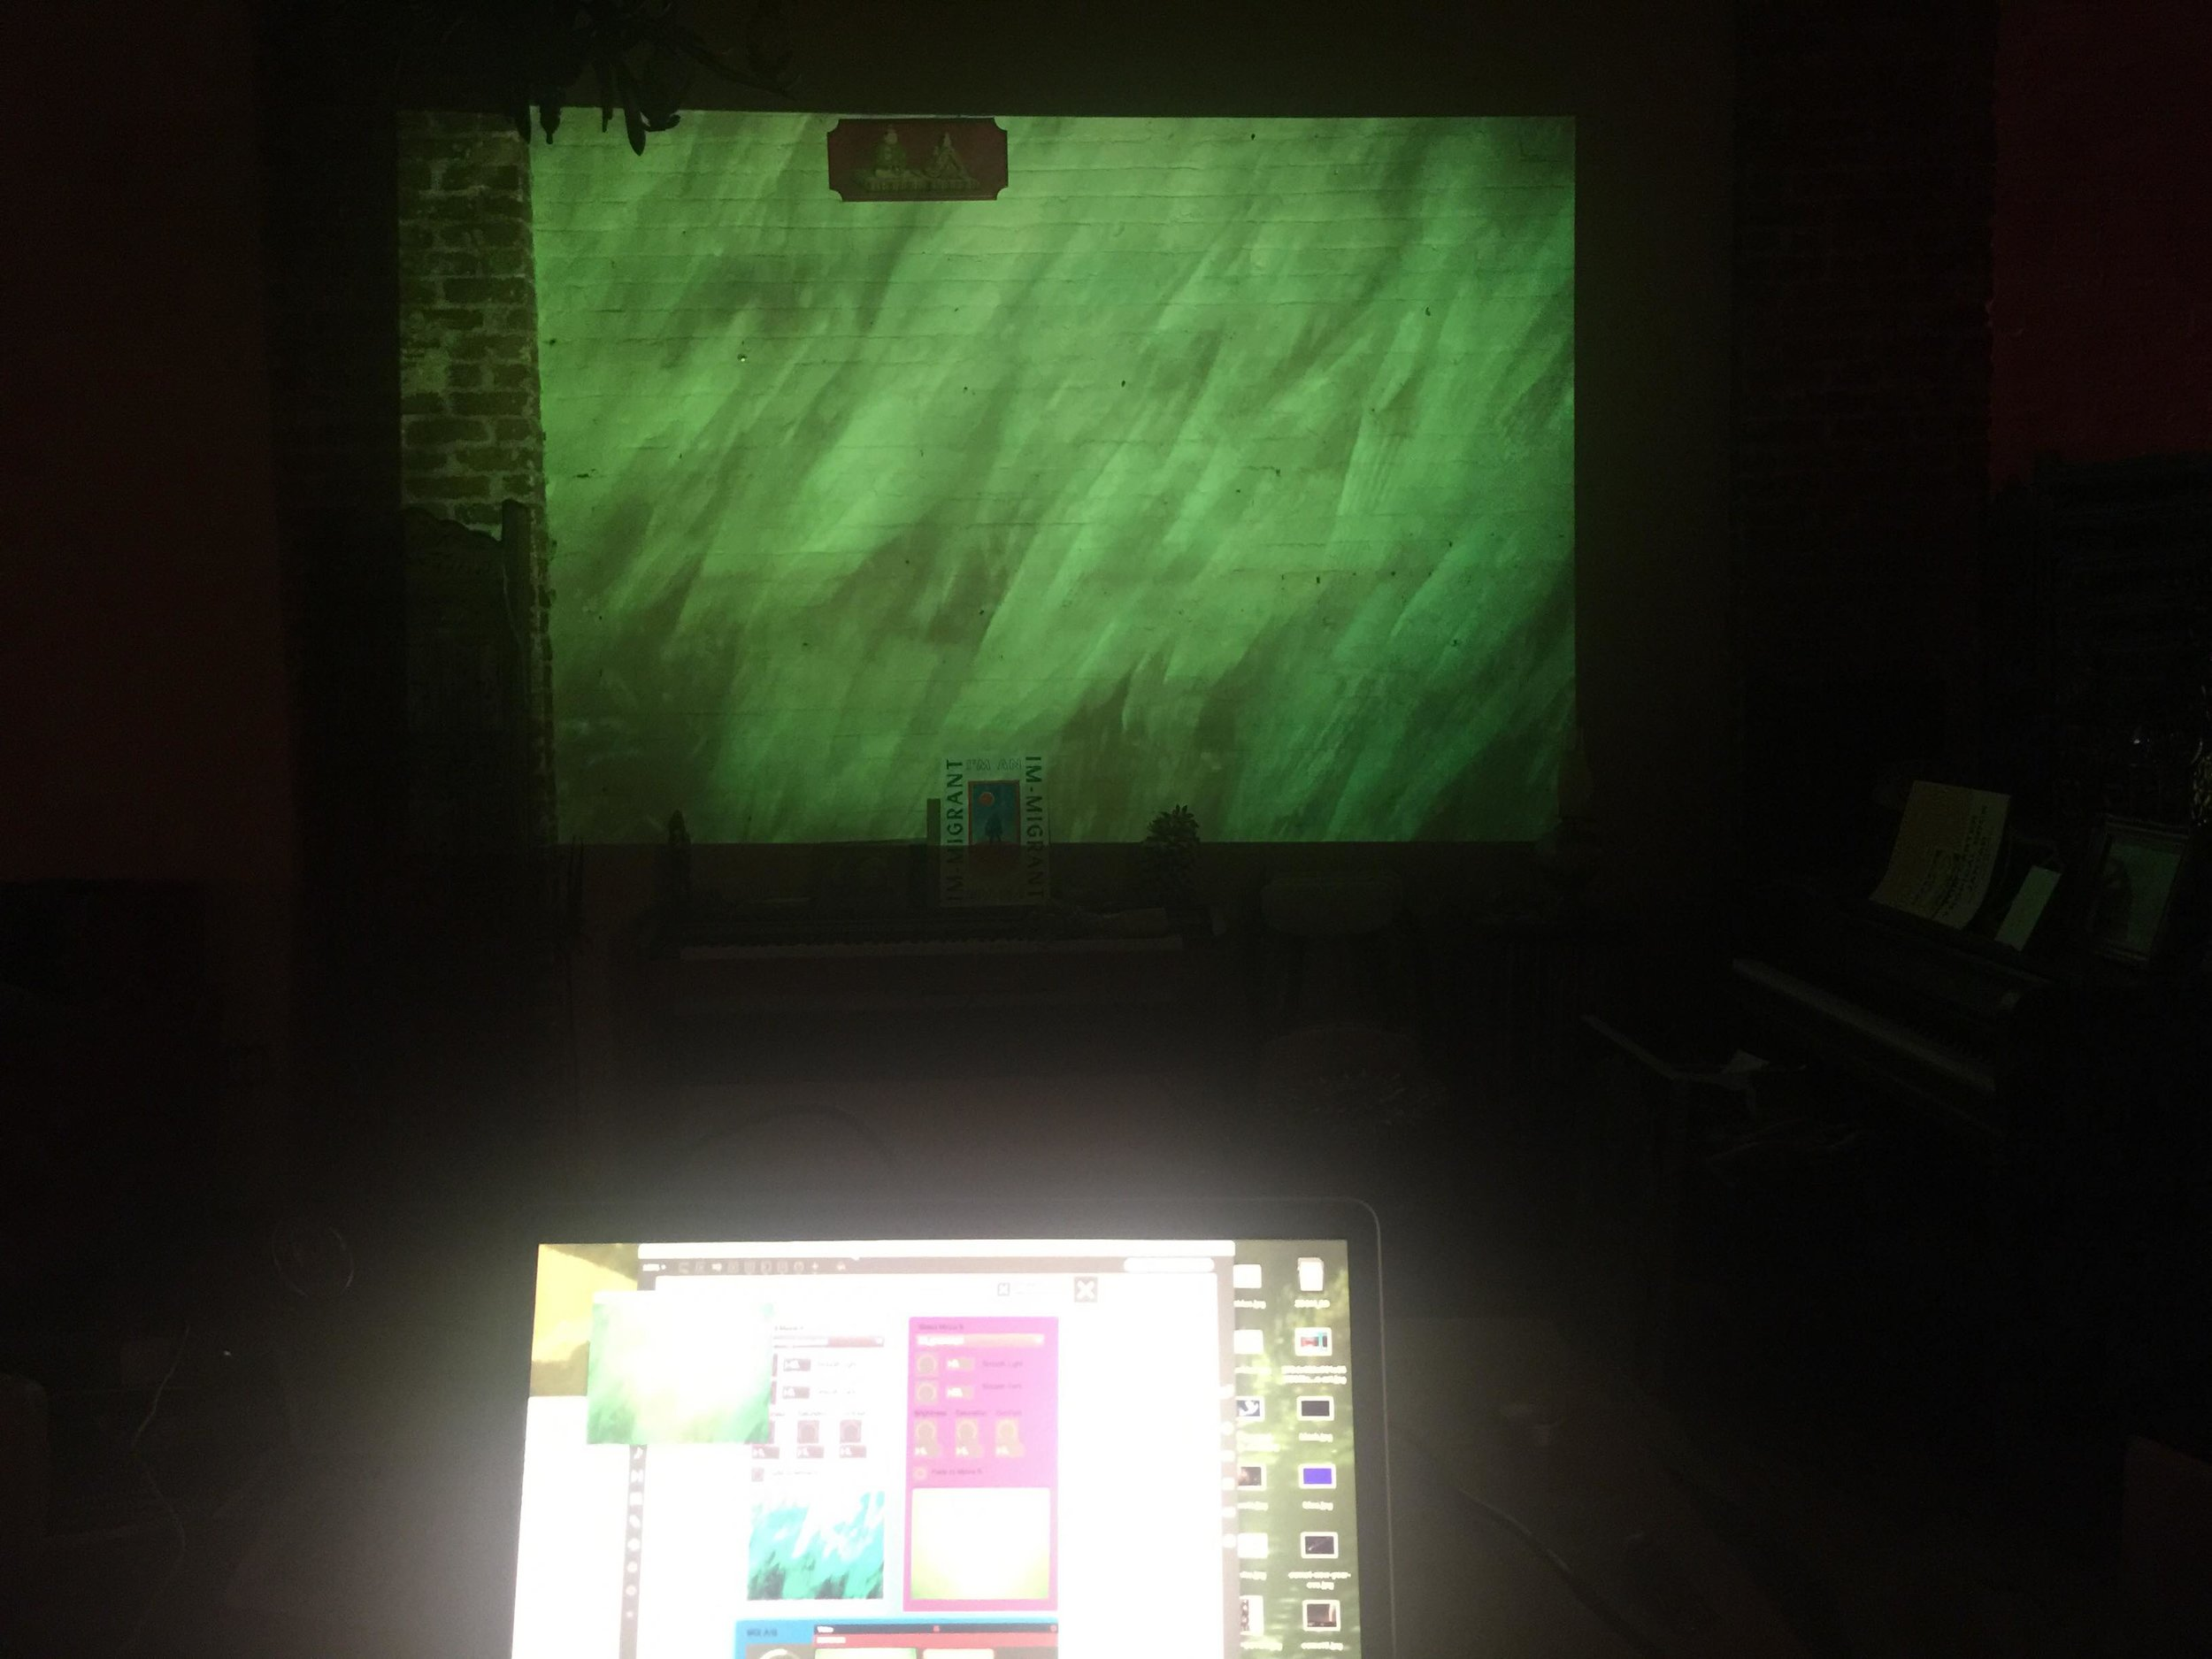 Playing w/ projector from ITP - different screen shots...